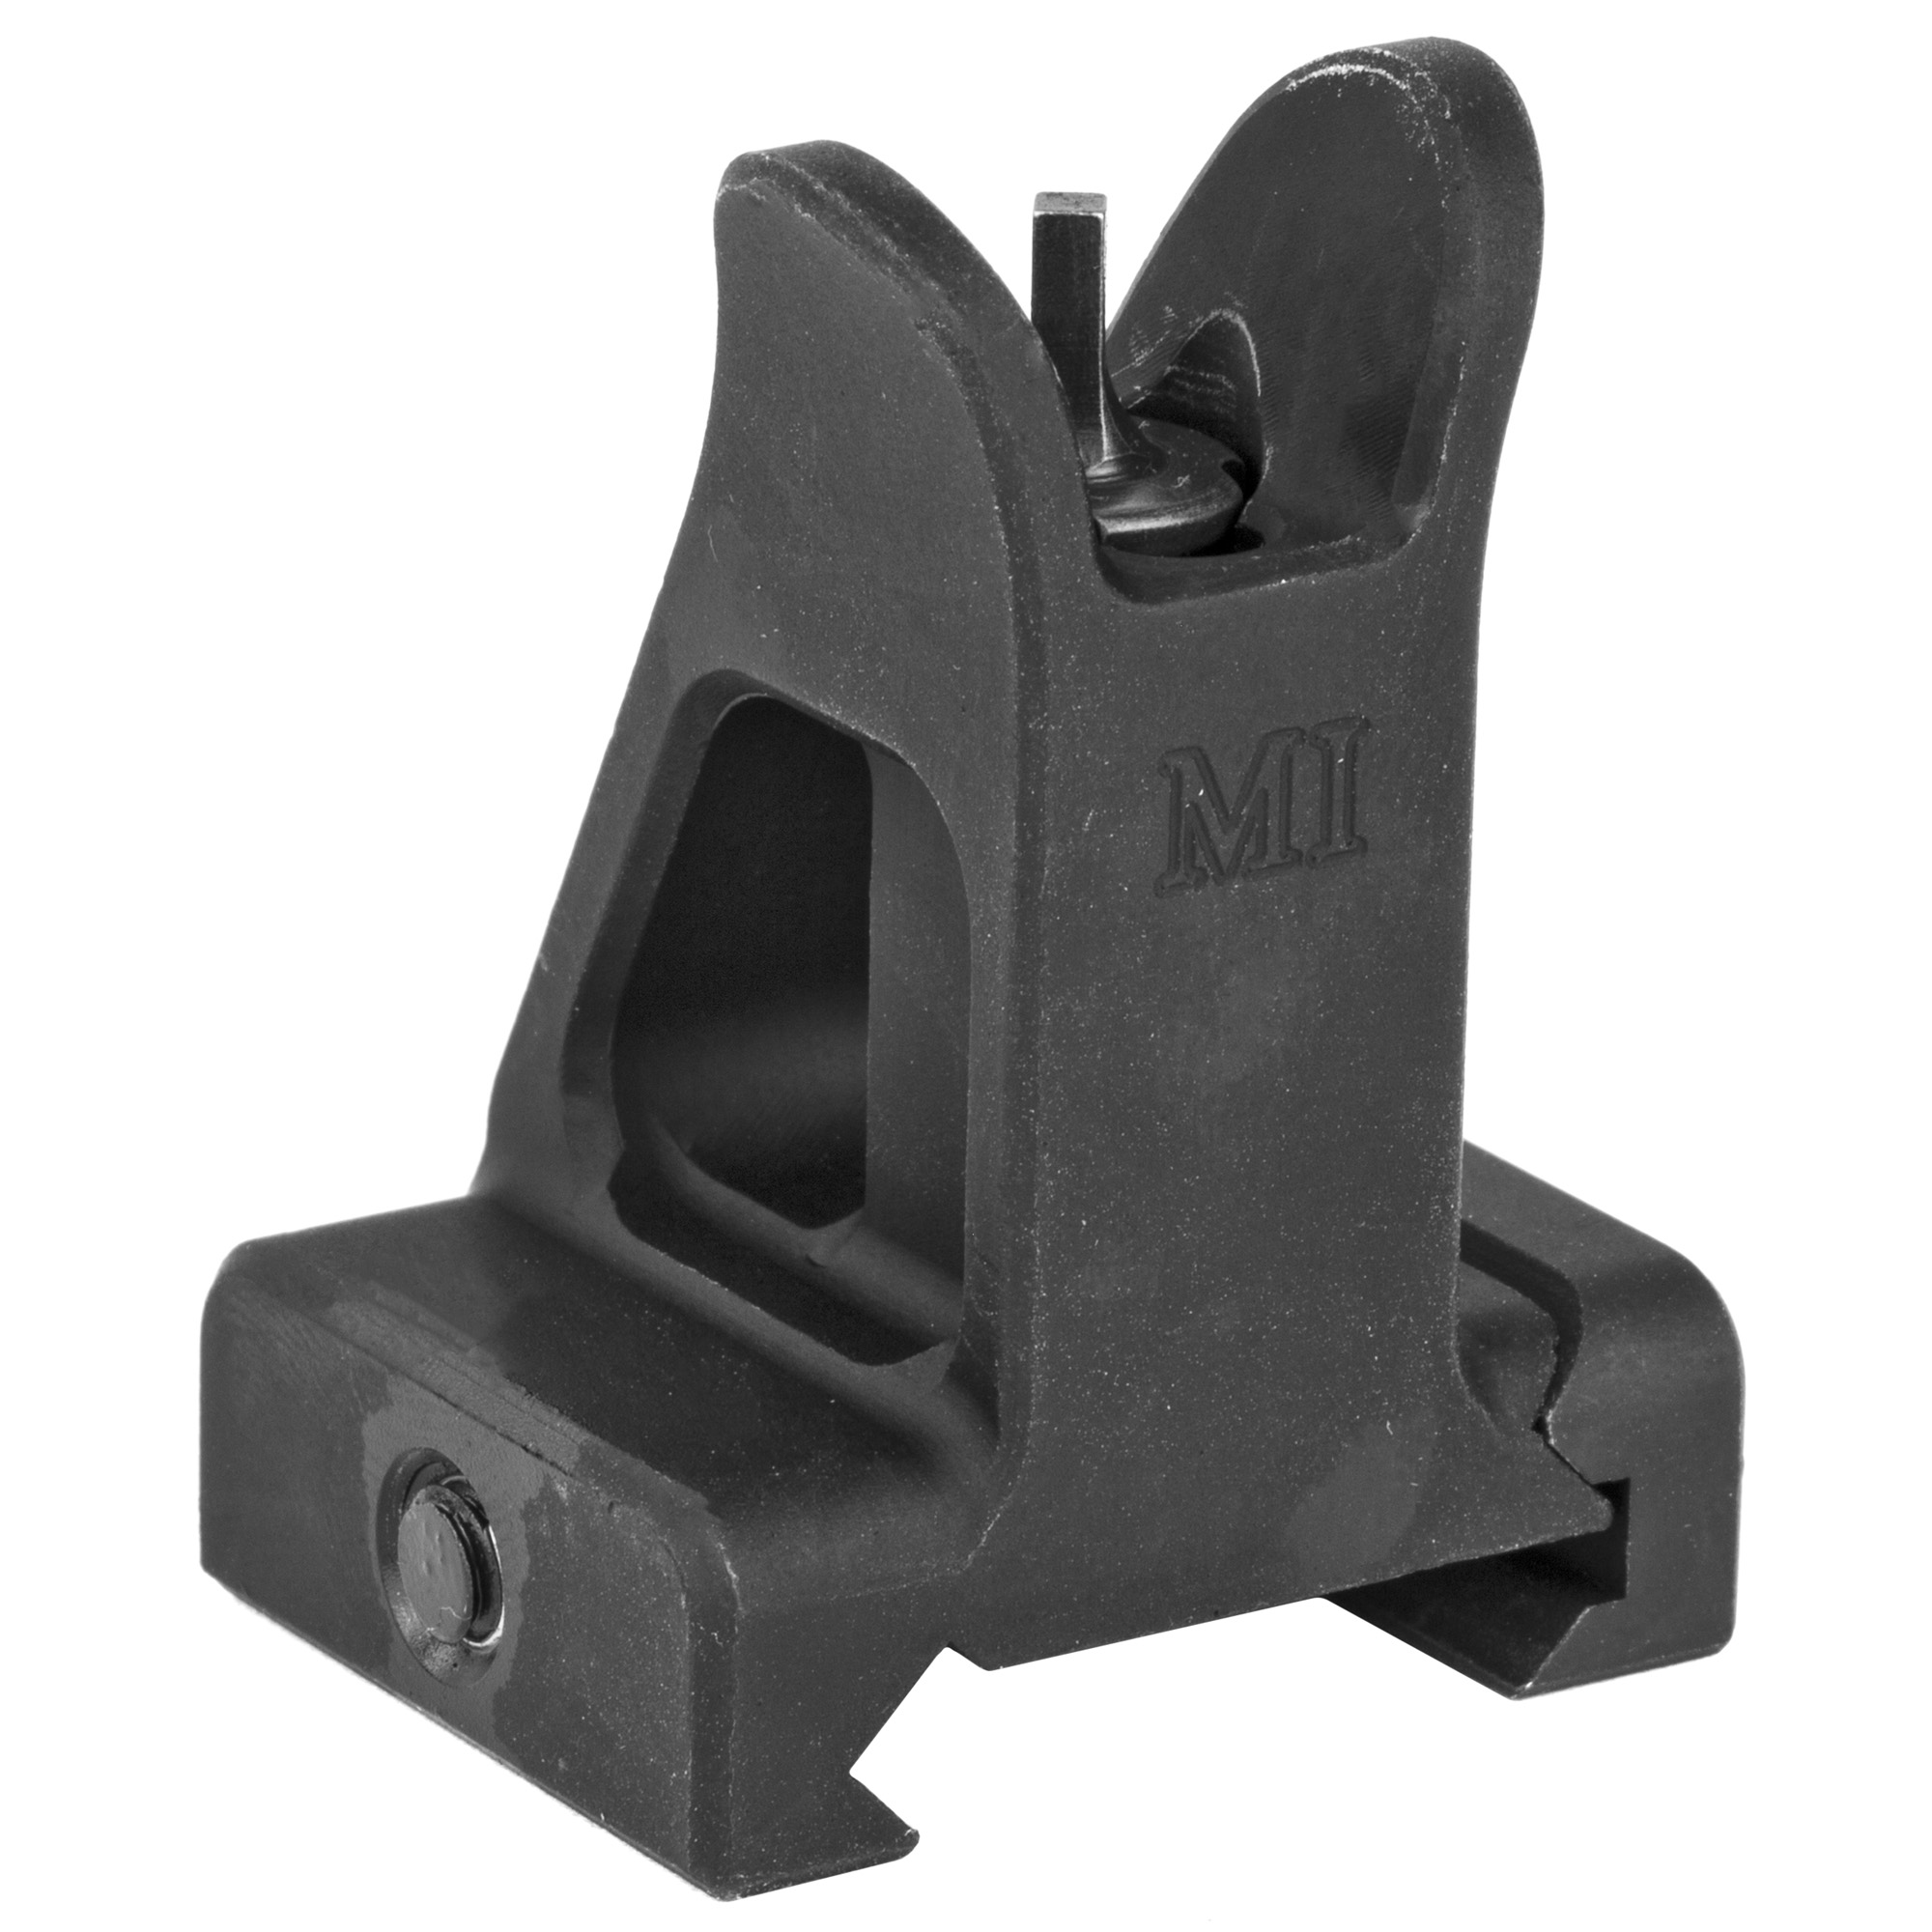 "If you prefer a battle proven design or want a set of top quality back up irons"" then the Midwest Industries Combat Fixed Front Sight fits the bill. Made of durable"" yet lightweight aircraft grade aluminum"" the sight is secured to any Picatinny"" weaver top mounted rail along any sized handguard."